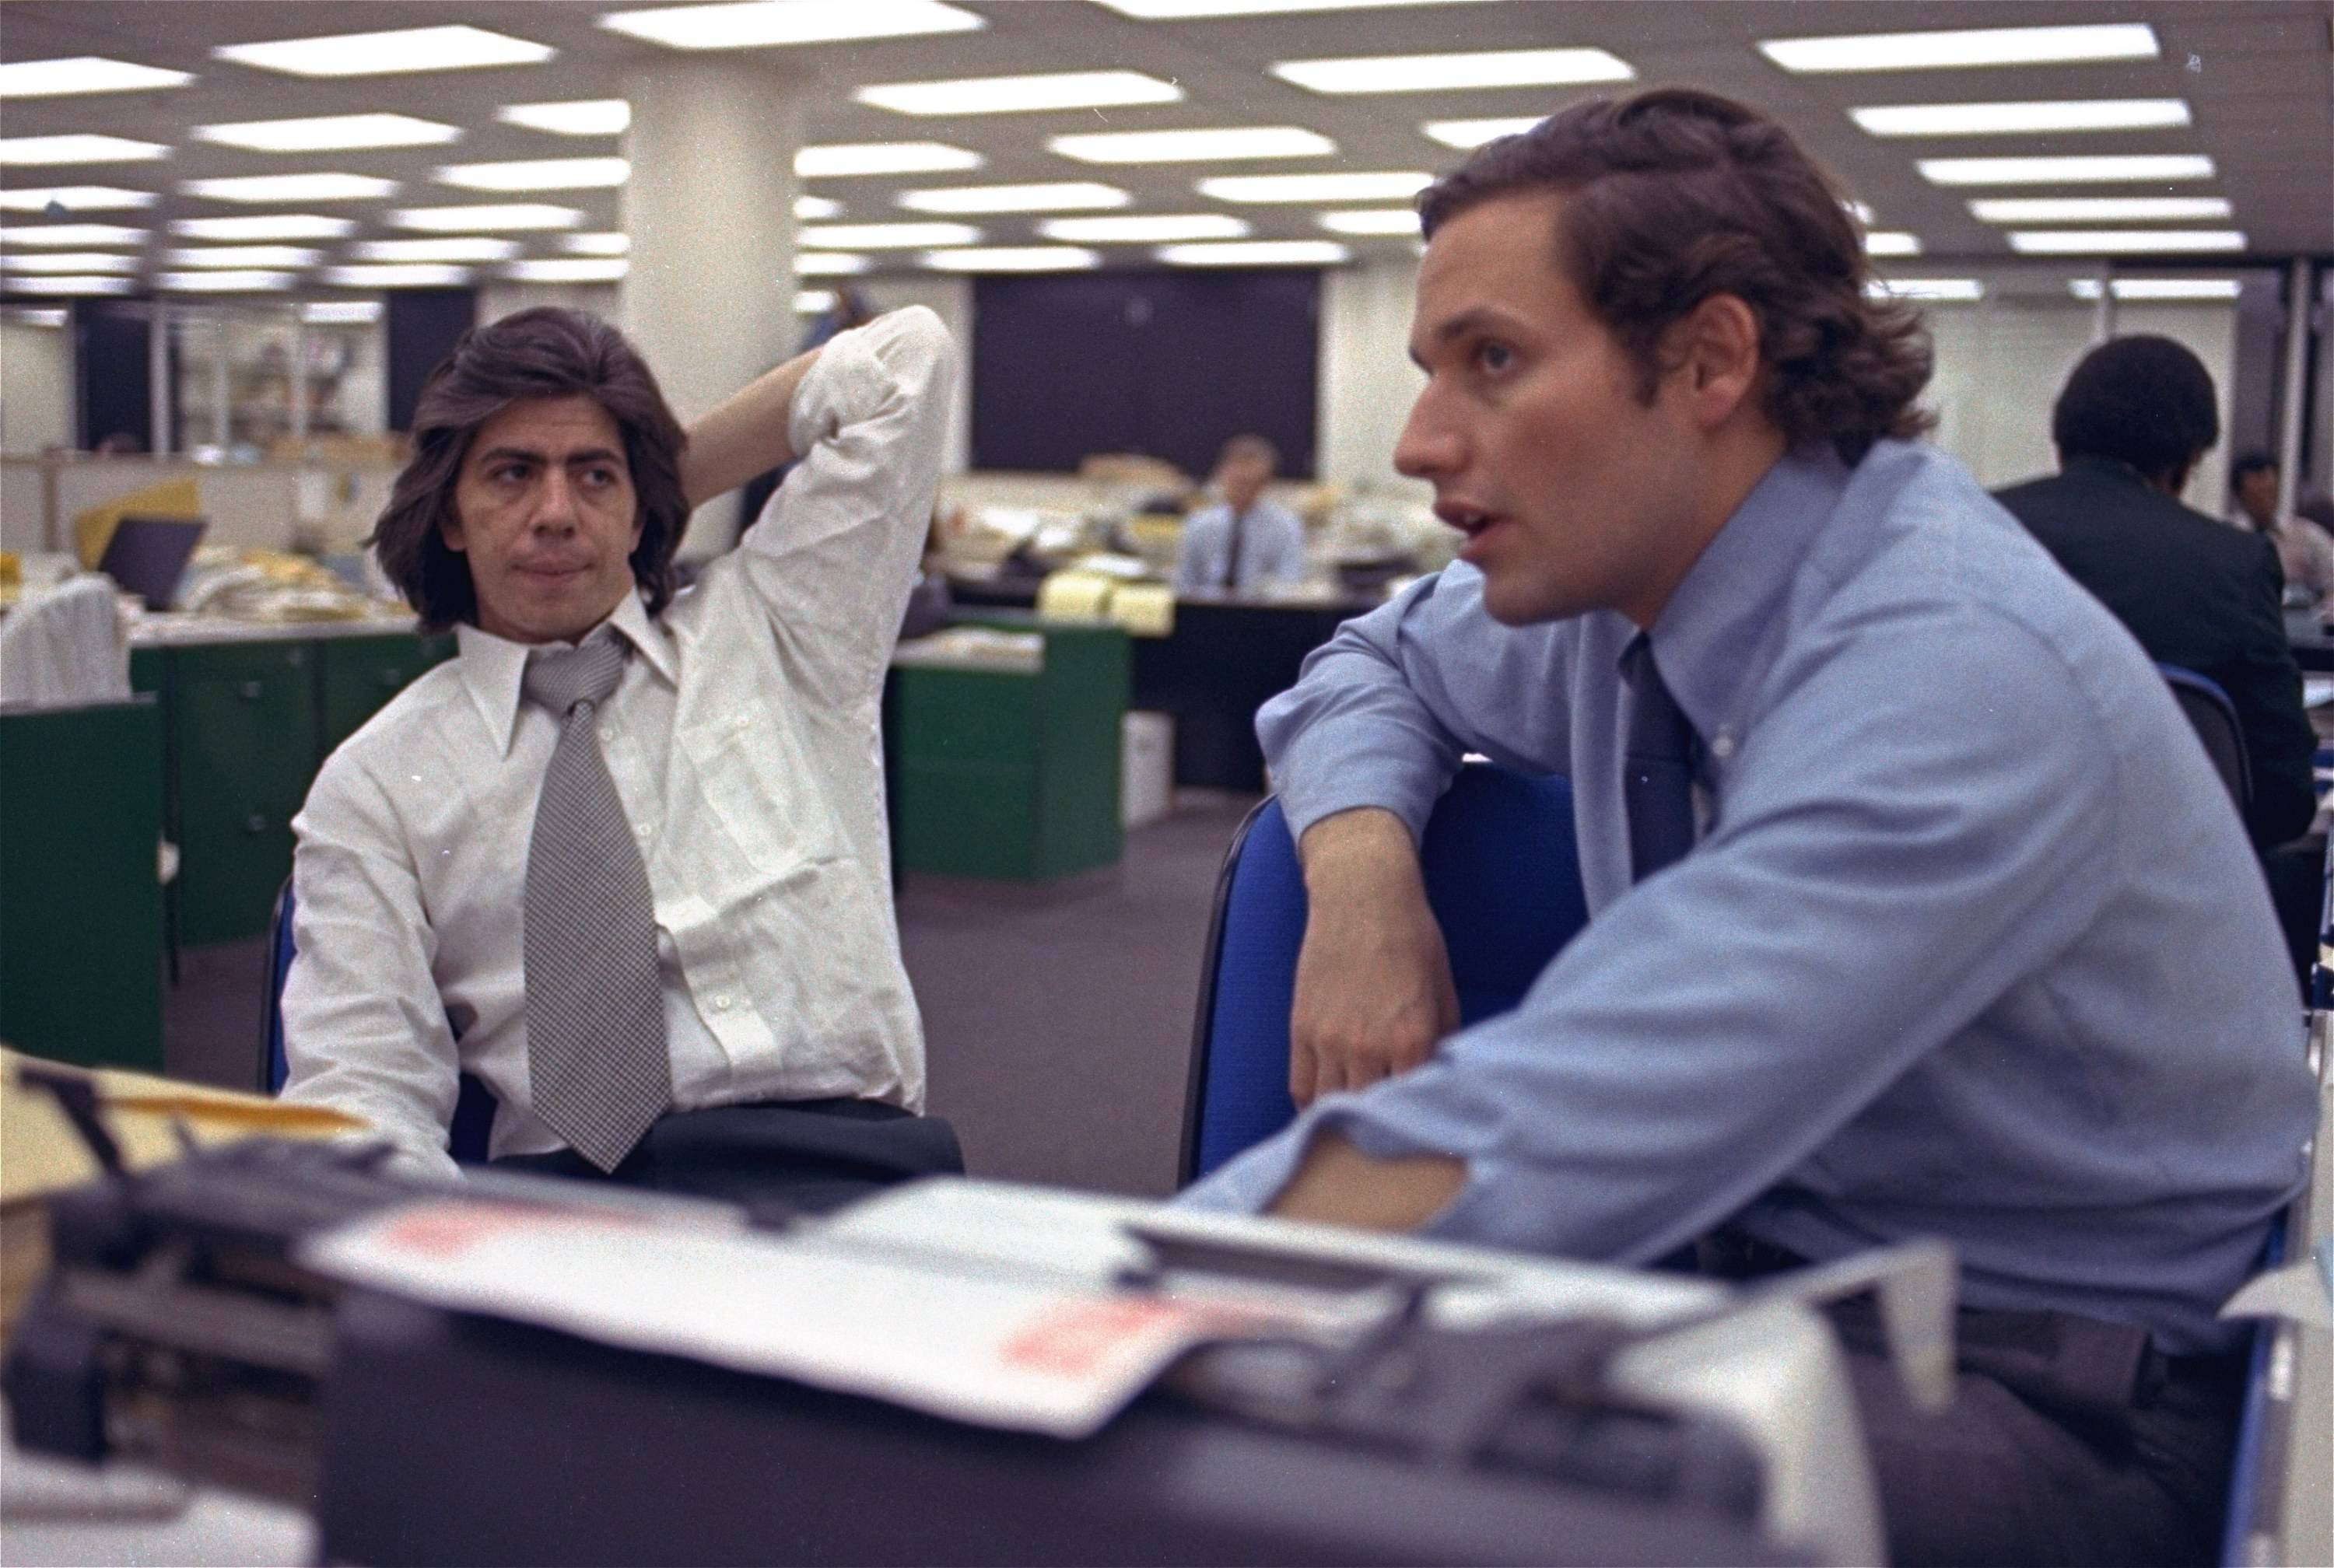 Reporters Bob Woodward, right, and Carl Bernstein, helped break the Watergate scandal that brought down the presidency of Richard Nixon. Woodward grew up in Wheaton.